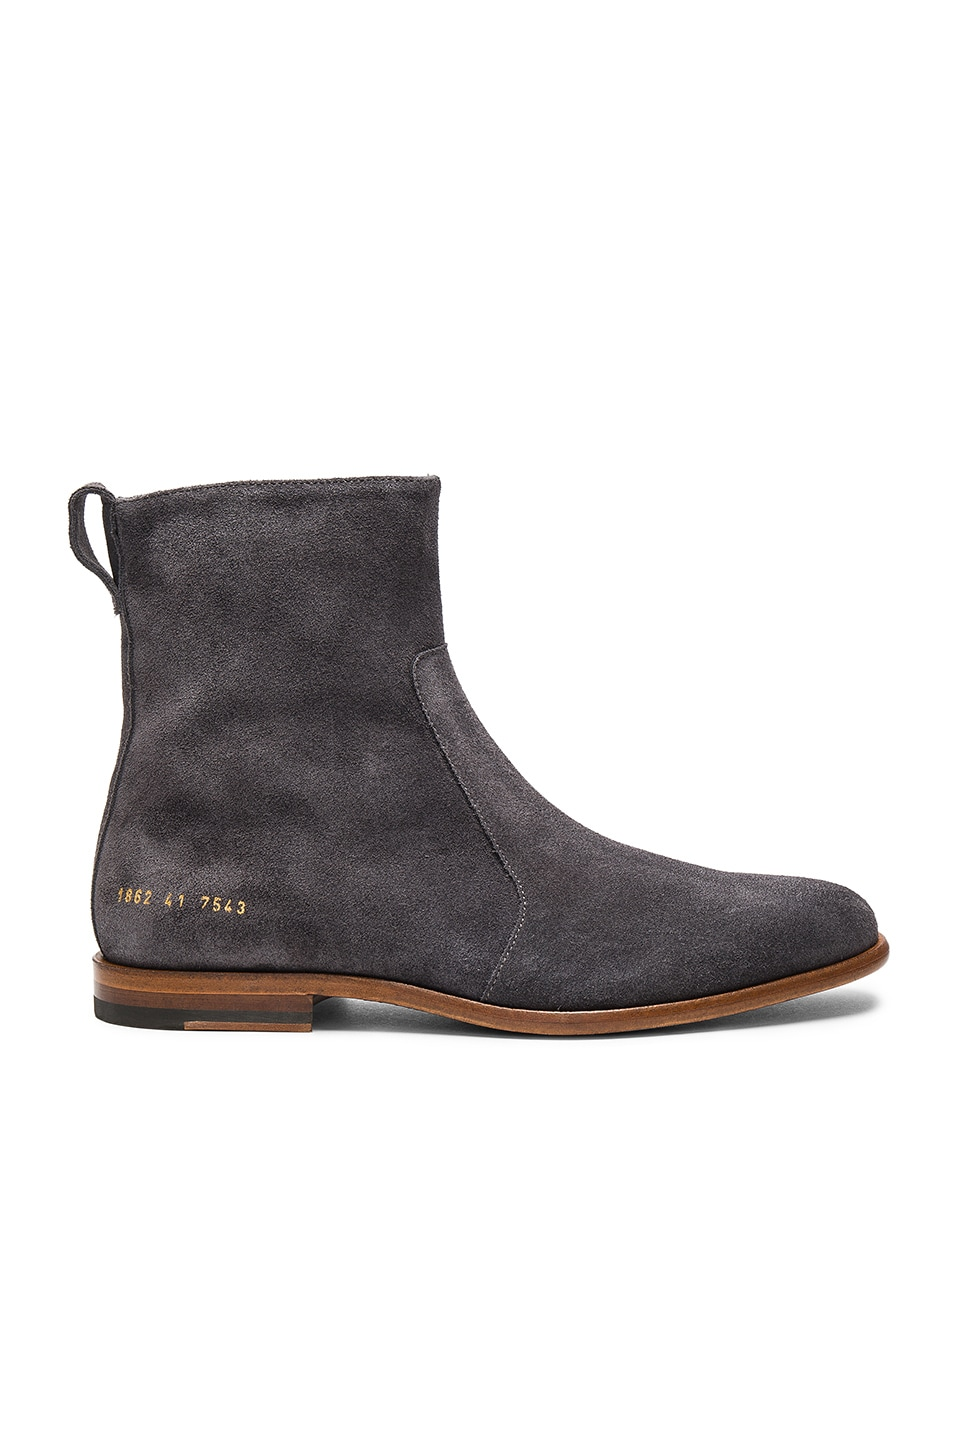 x Common Projects Chelsea Boots